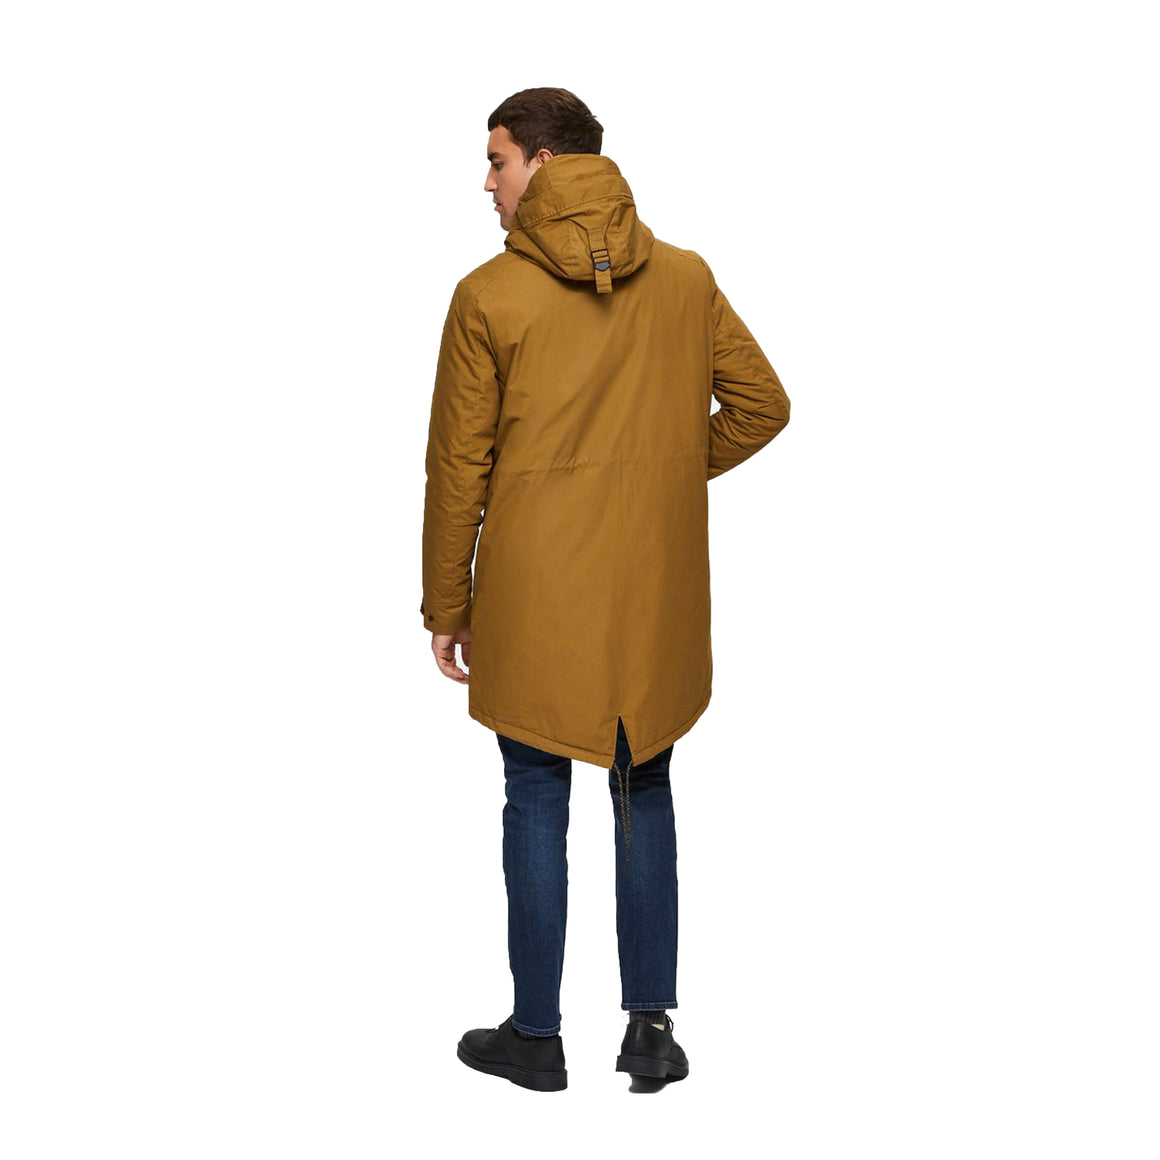 SLH Sustainable Iconics Parka for Men in Butternut